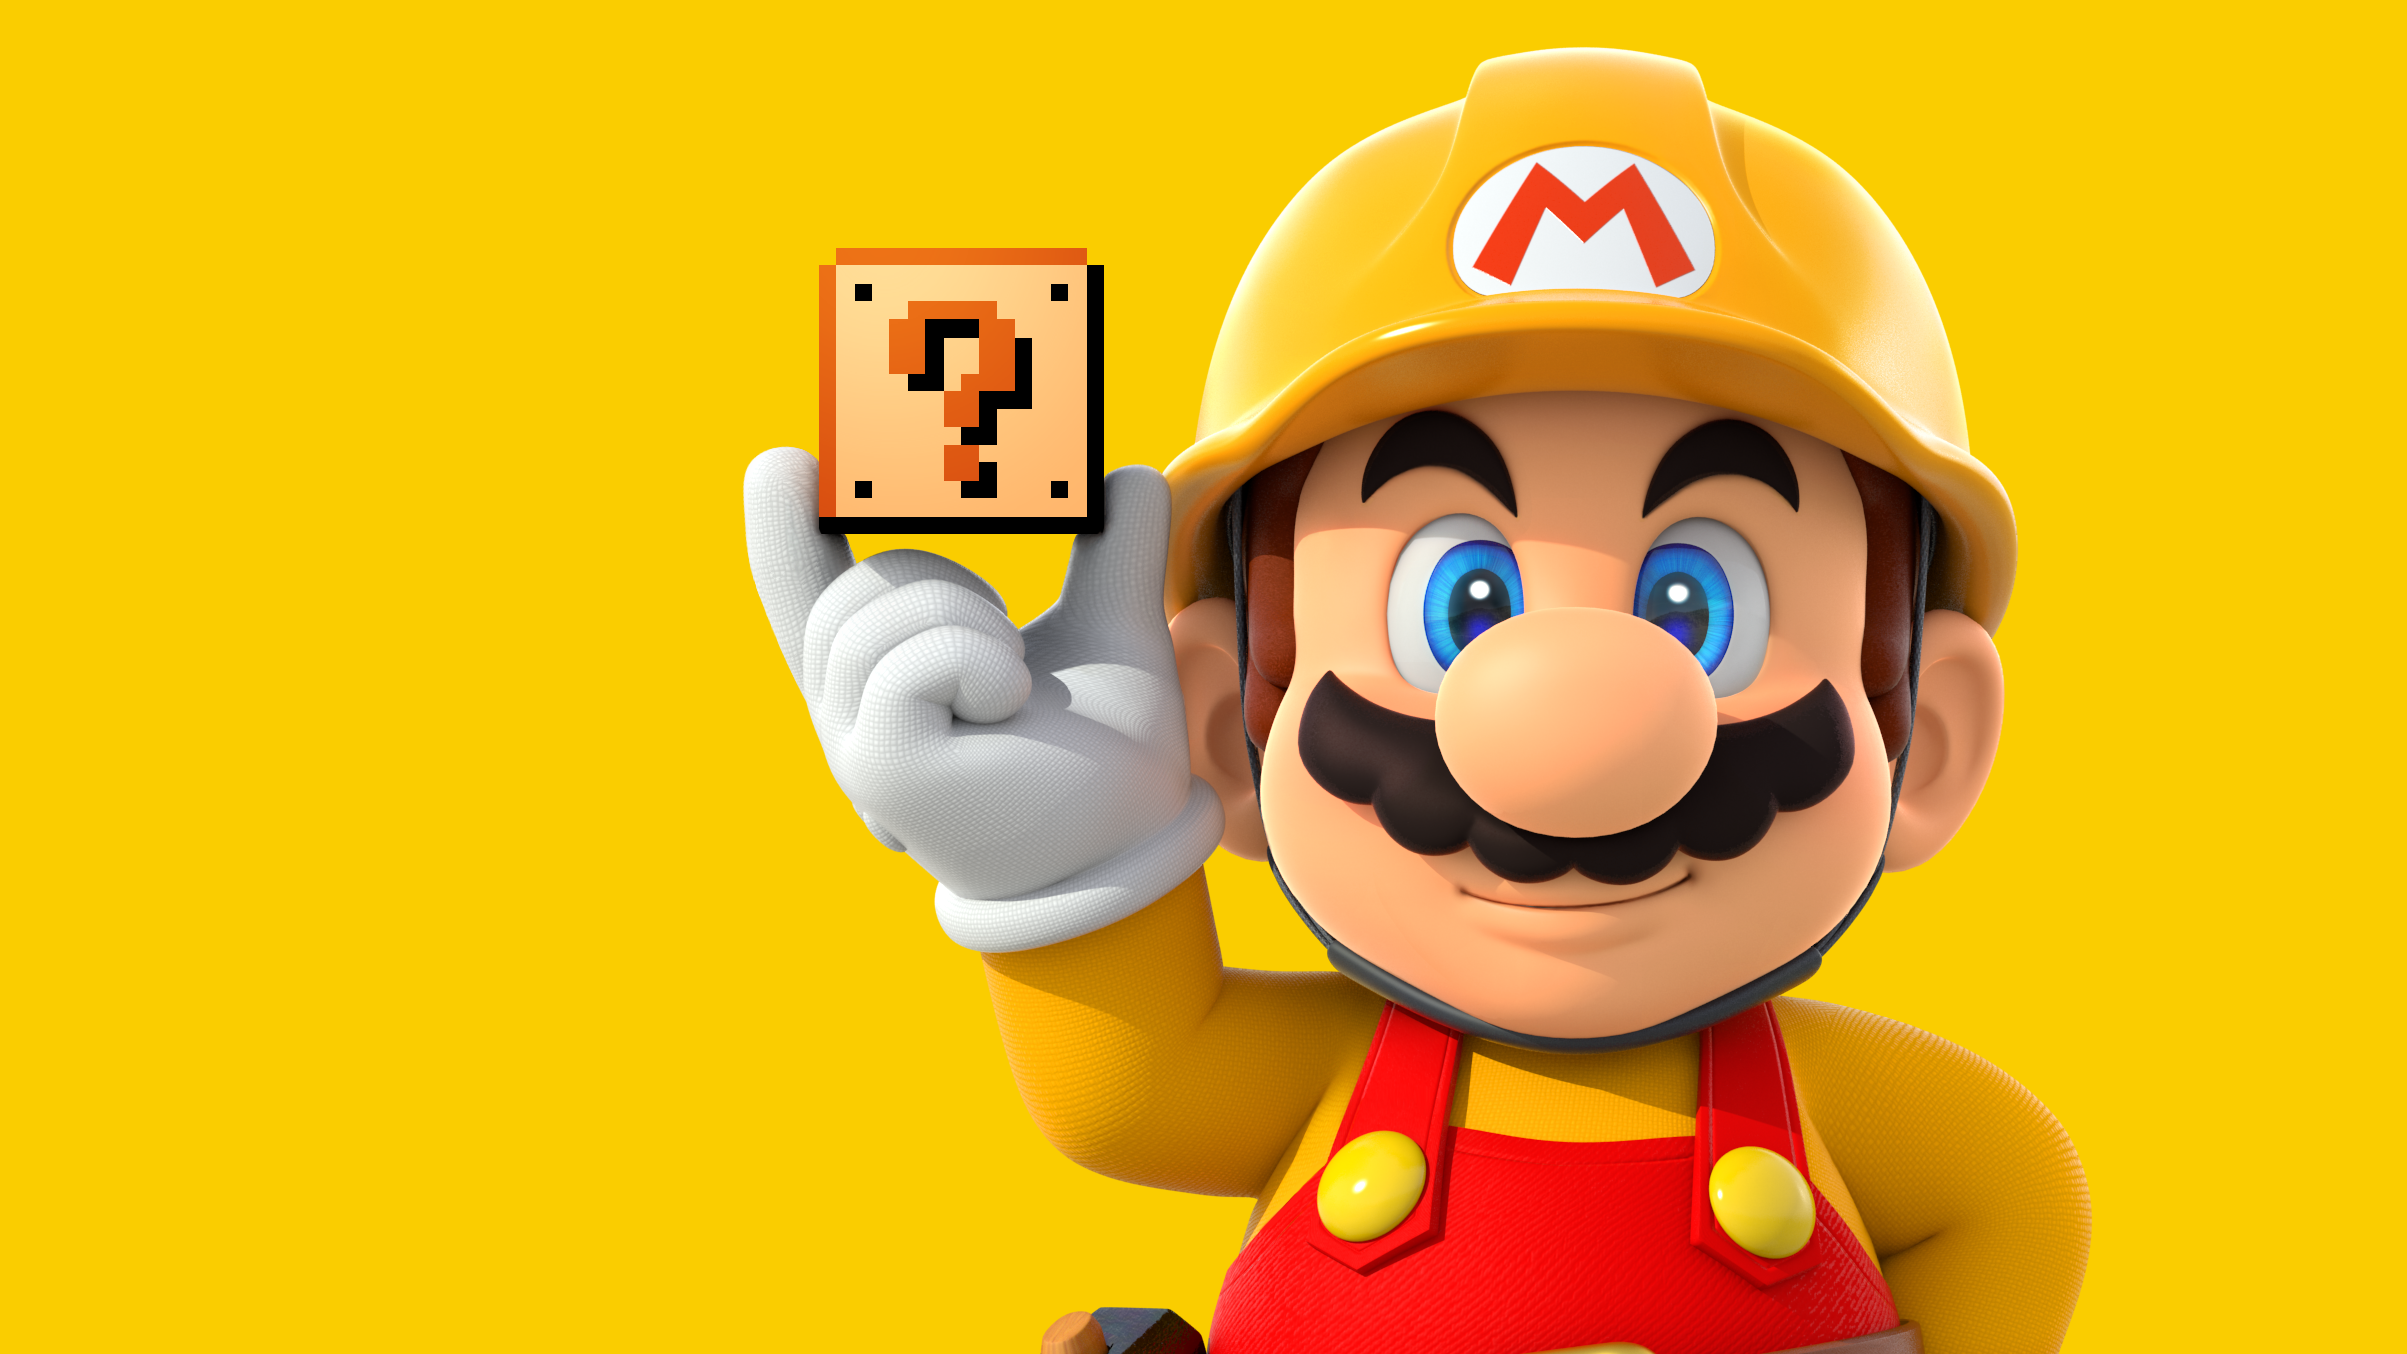 Super Mario Maker for Nintendo 3DS makes up for lost